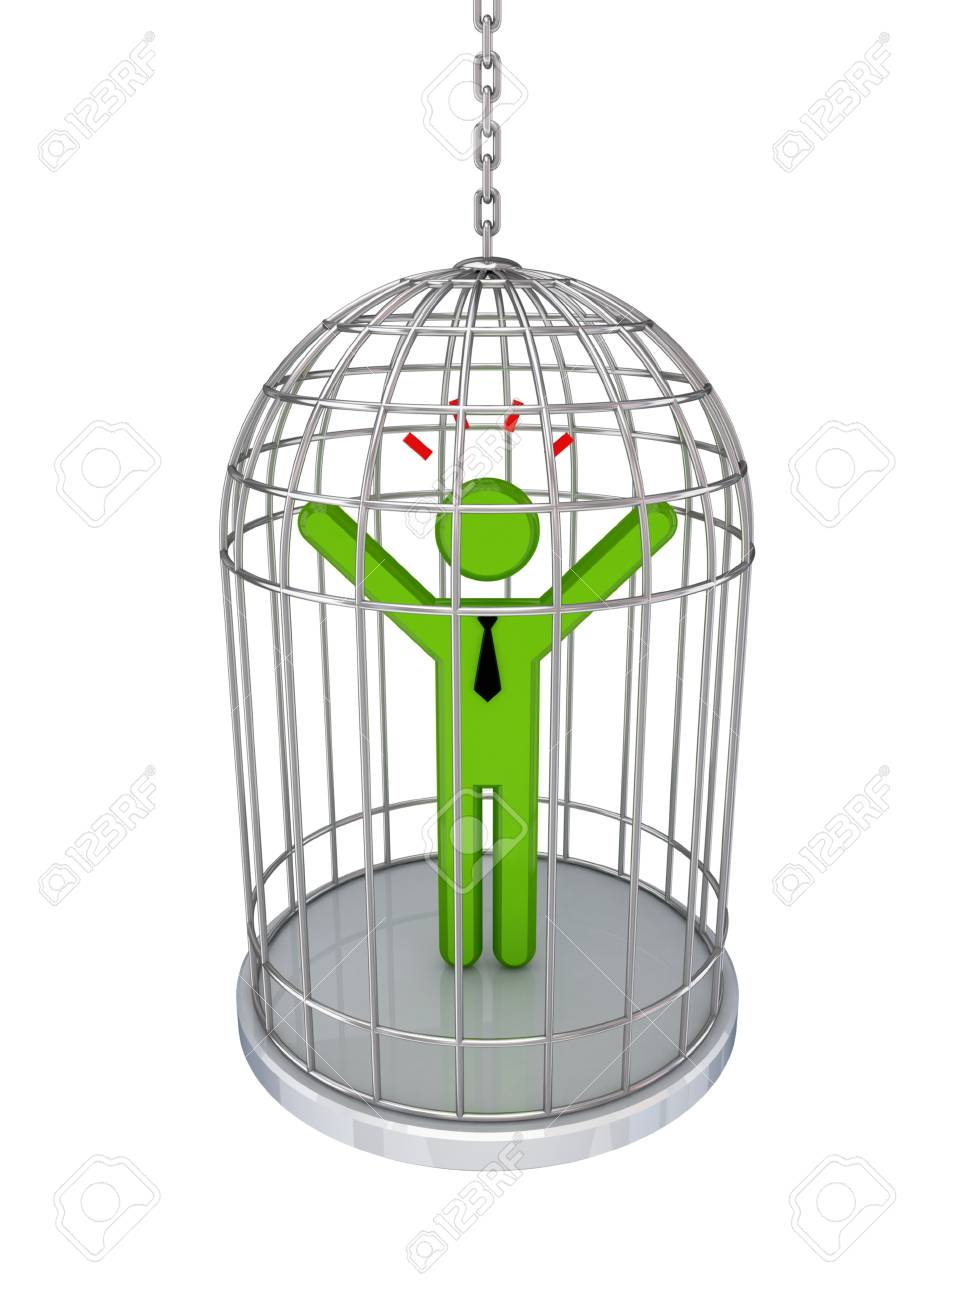 3d small person in a birdcage.Isolated on white background. Stock Photo - 12174649